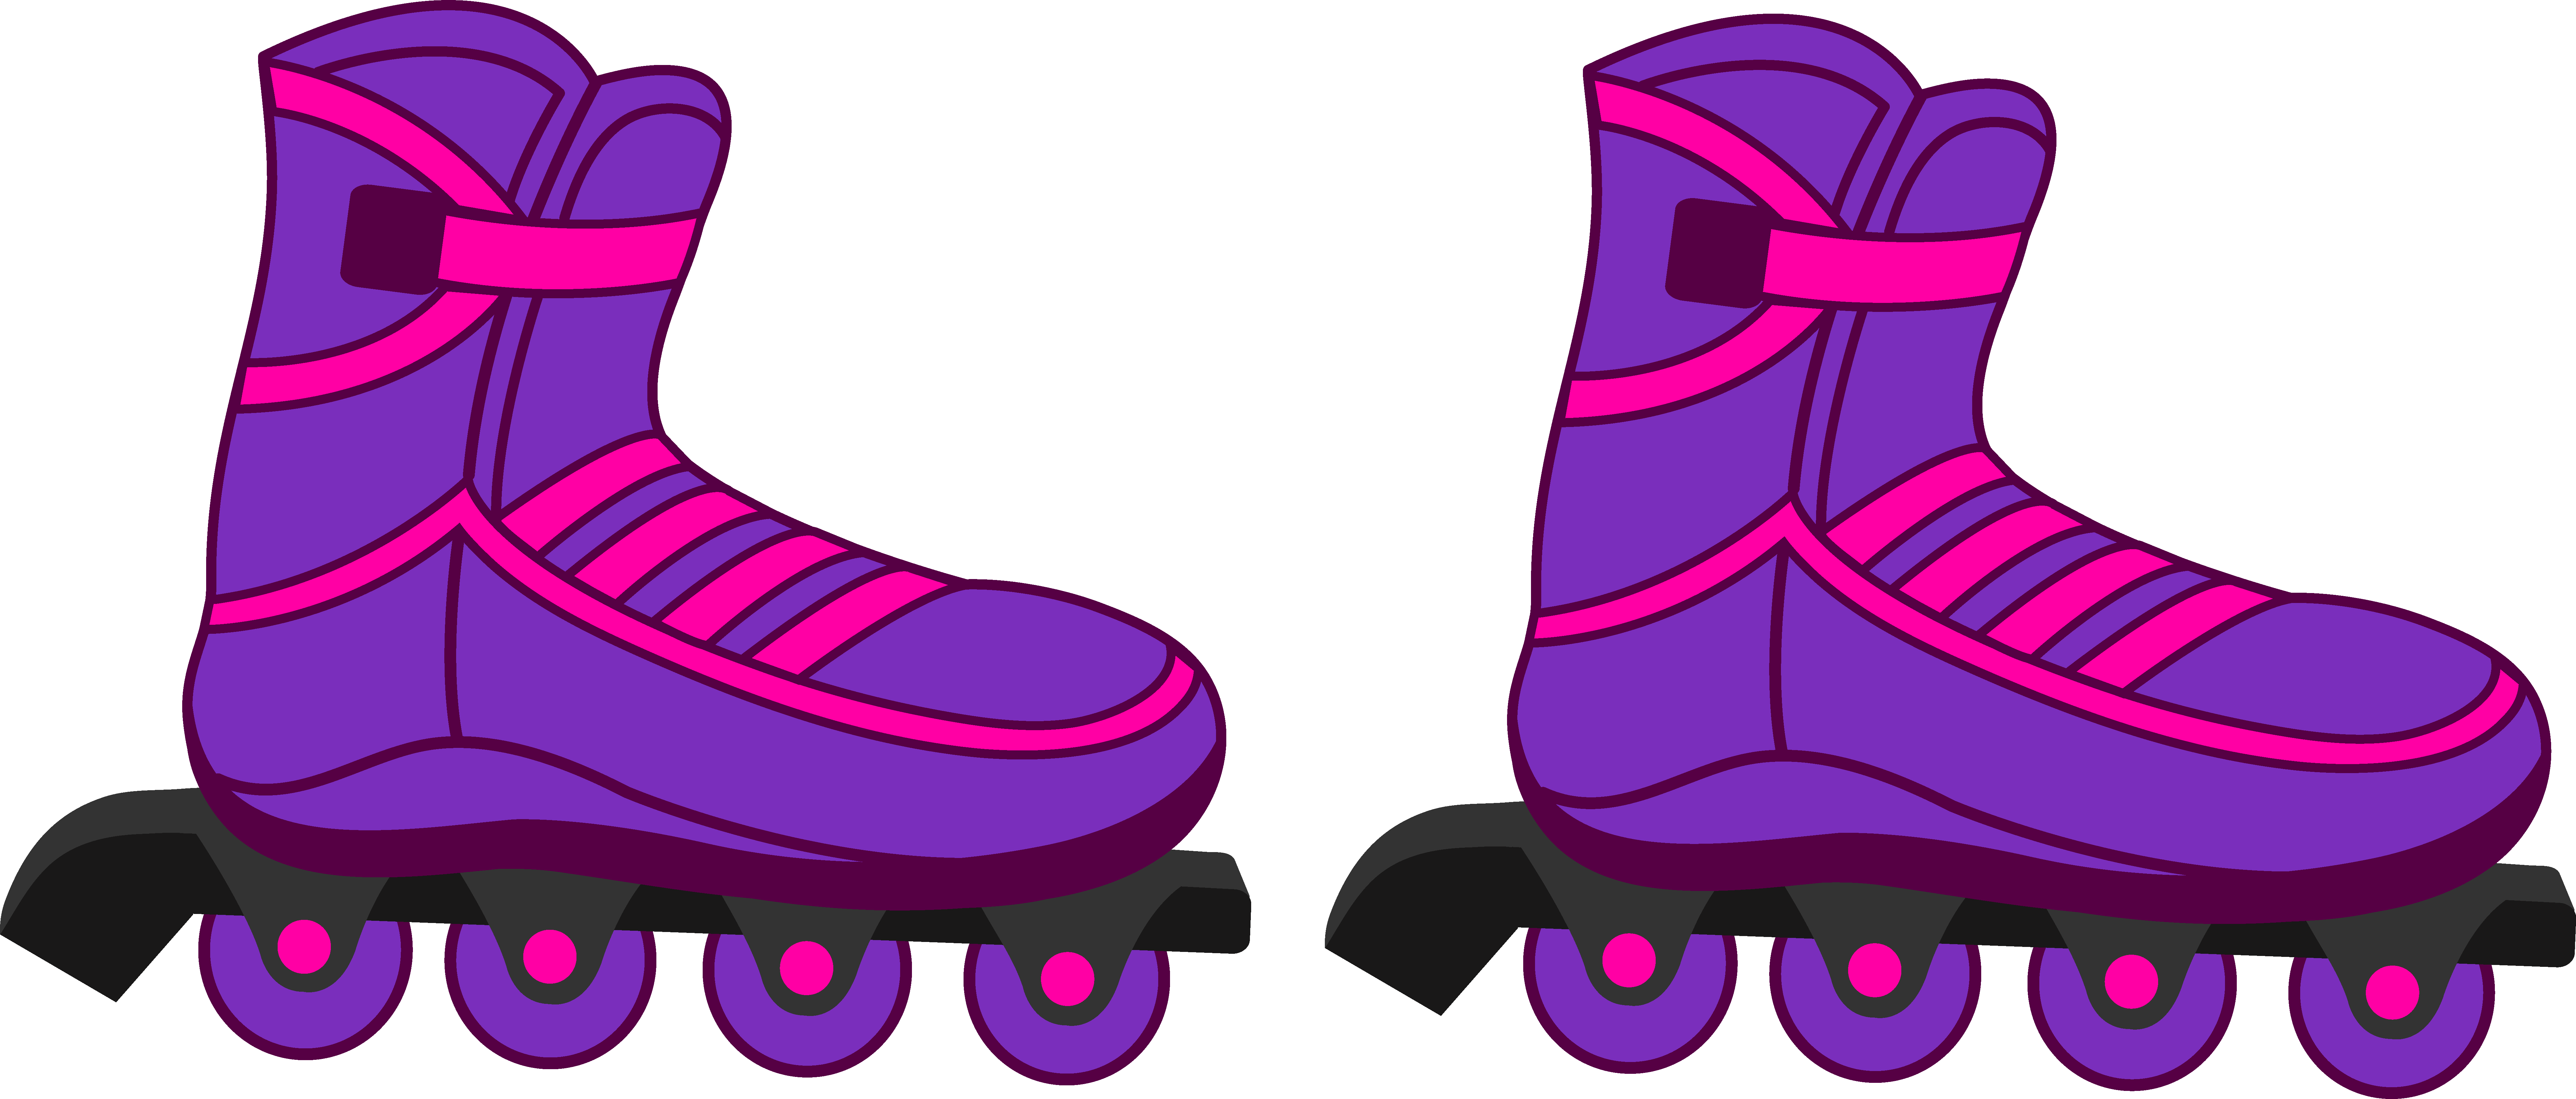 Roller blades clipart.